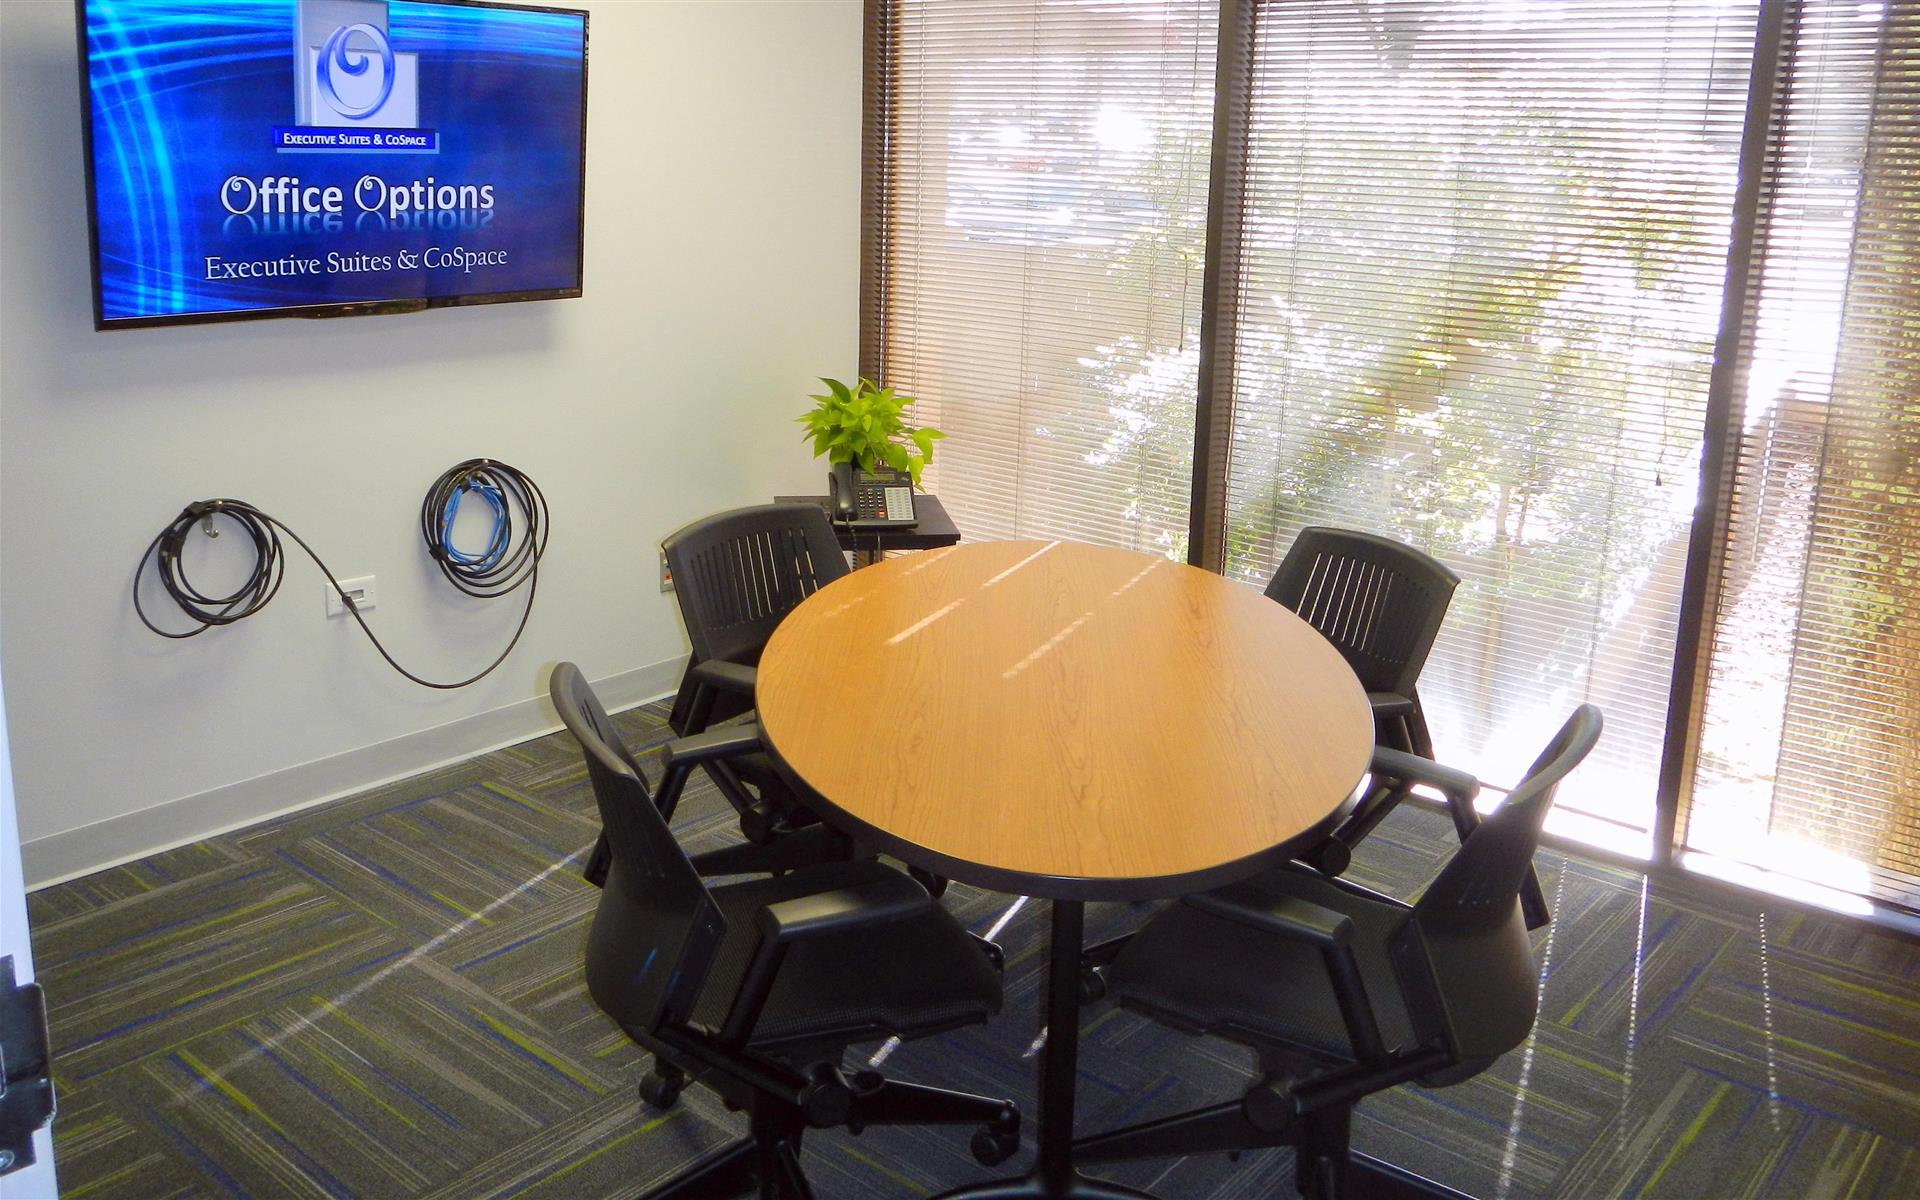 Office Options Meeting Room Facilities - Conference Room B